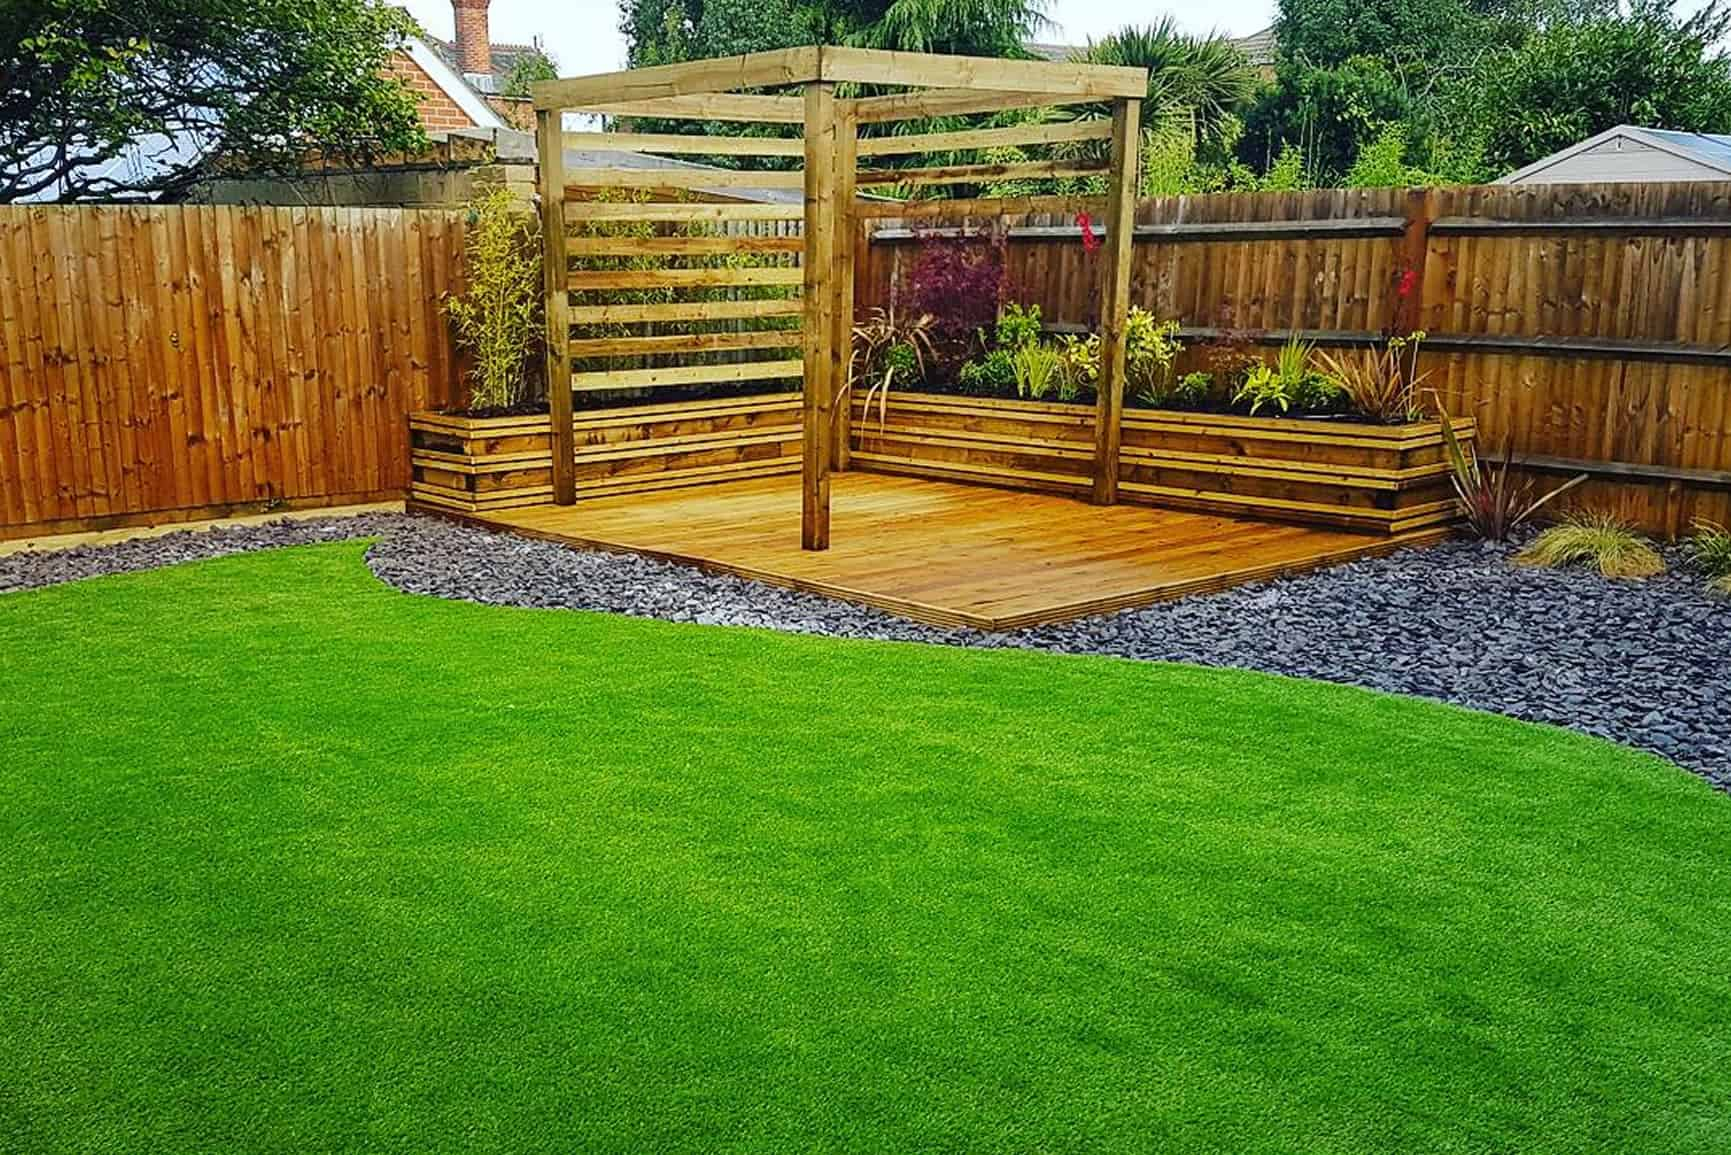 Solent garden services landscaping gardeners decking for Garden design services